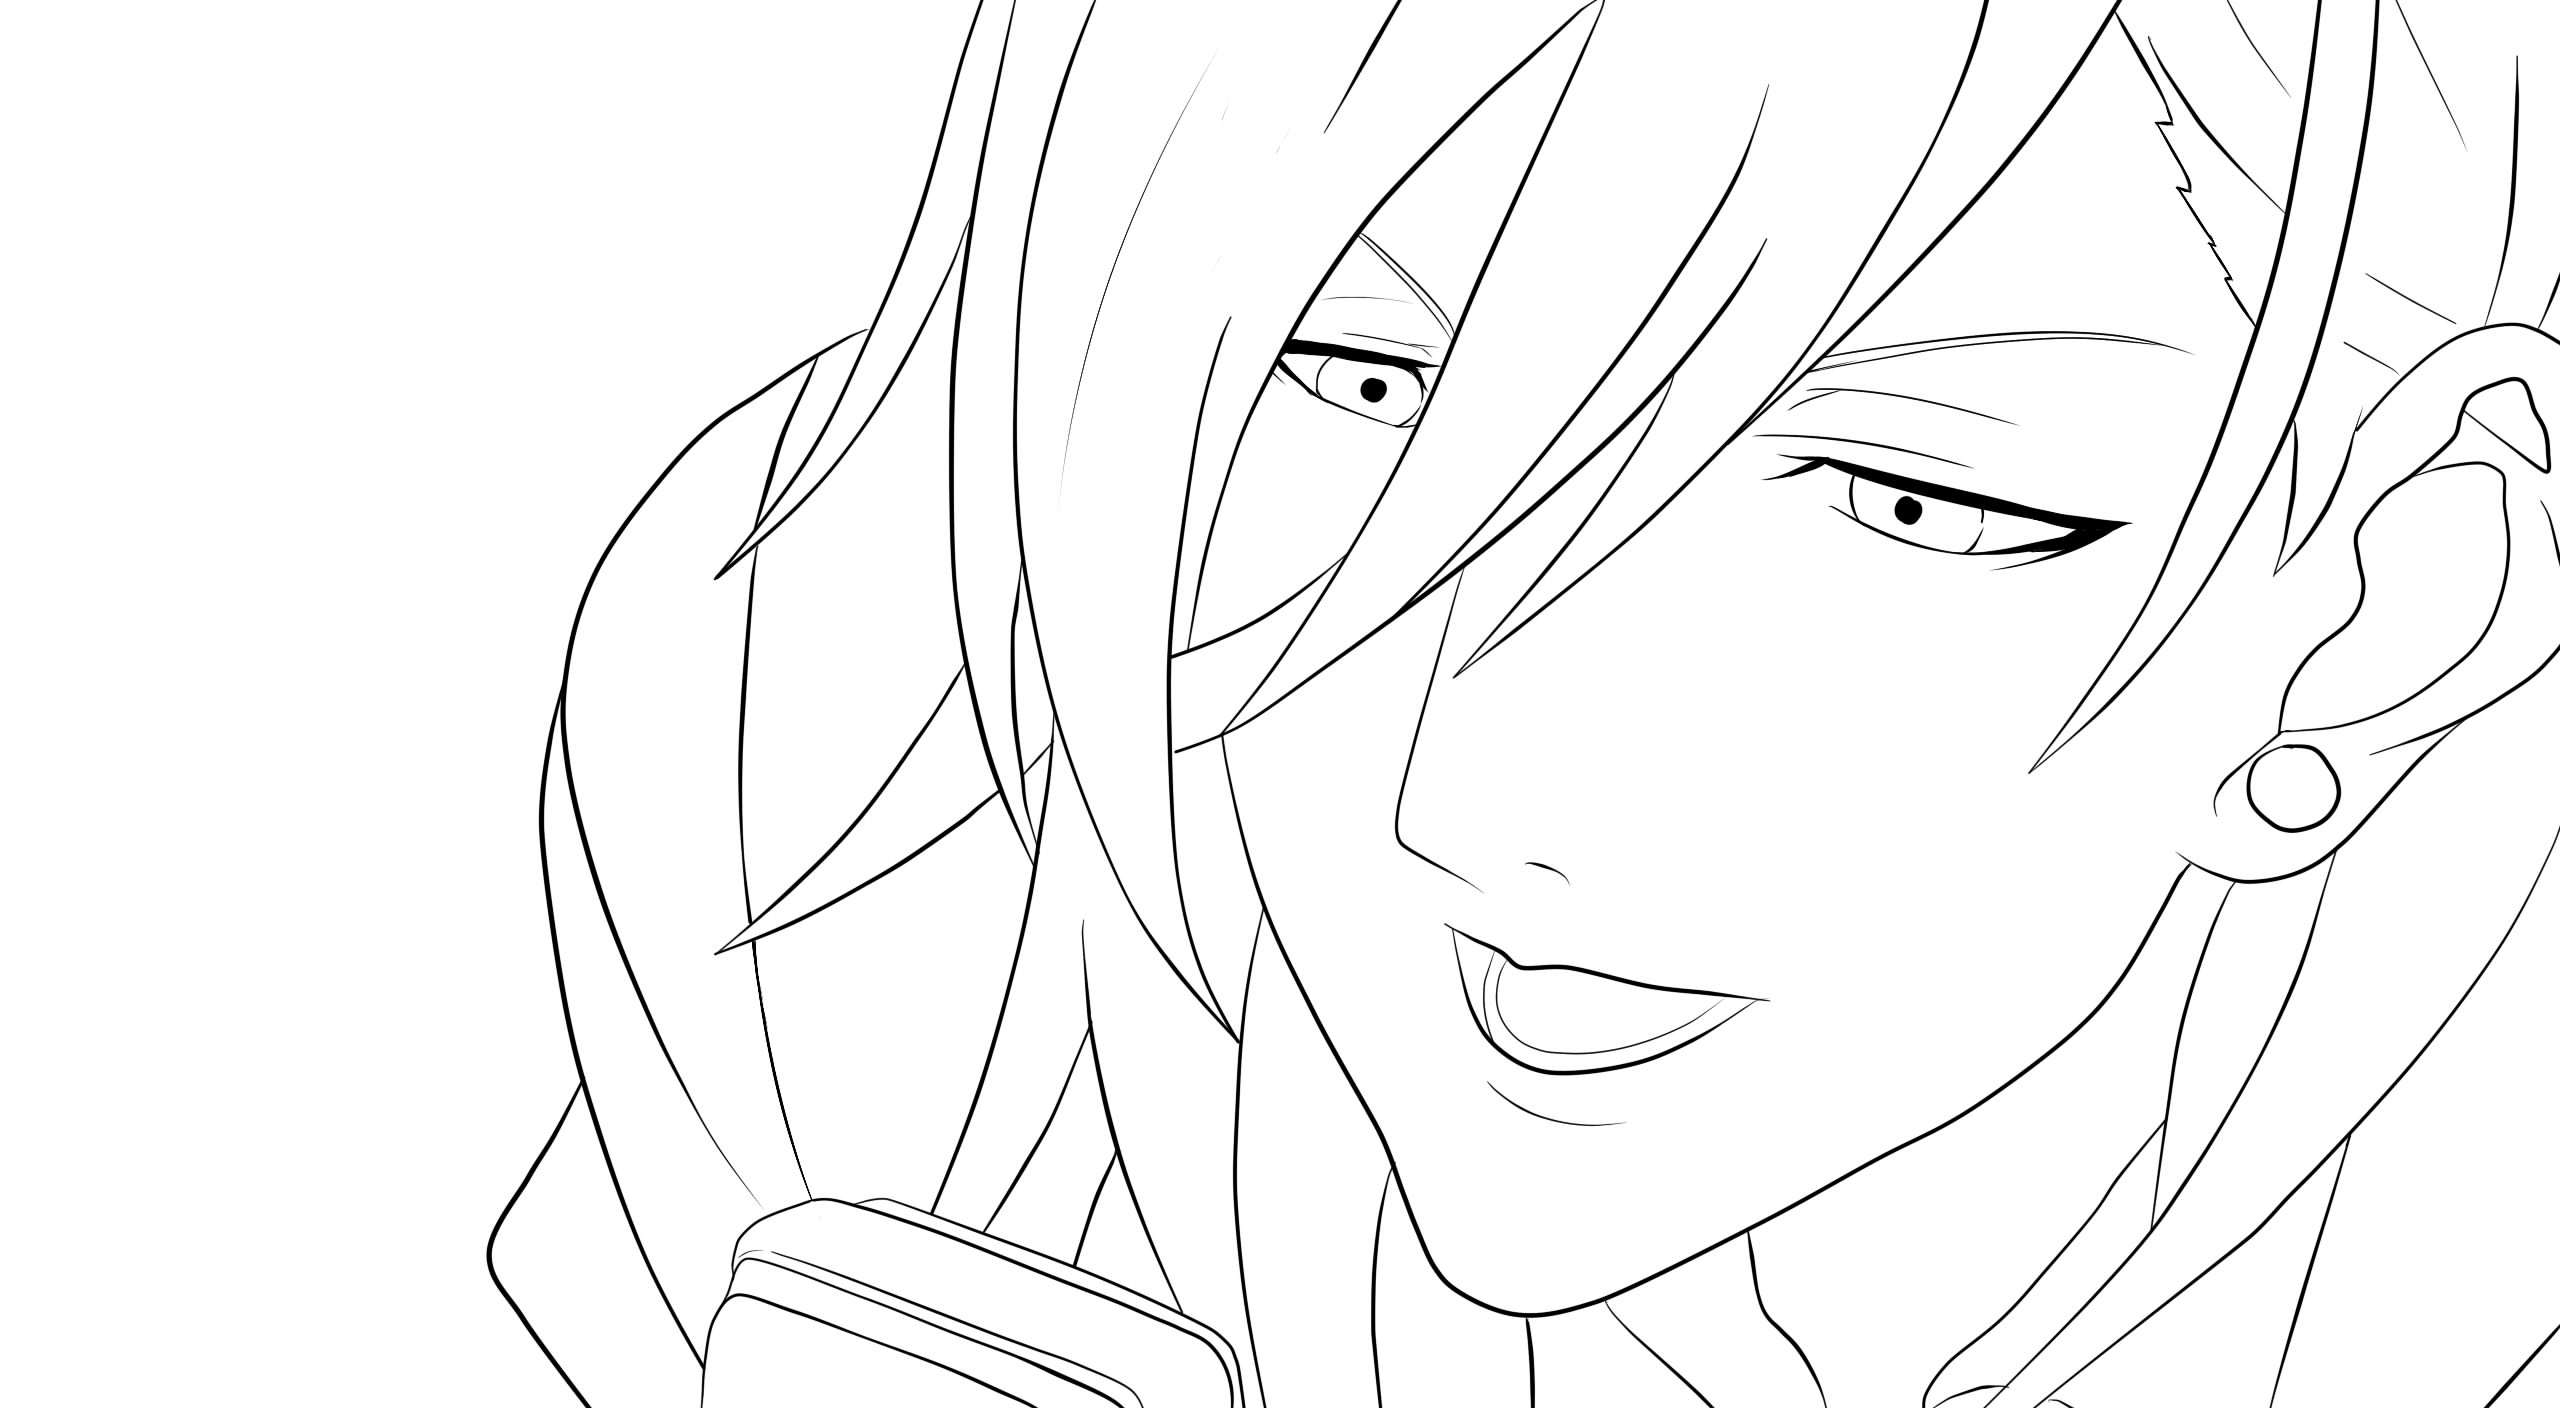 maji coloring pages - photo#6